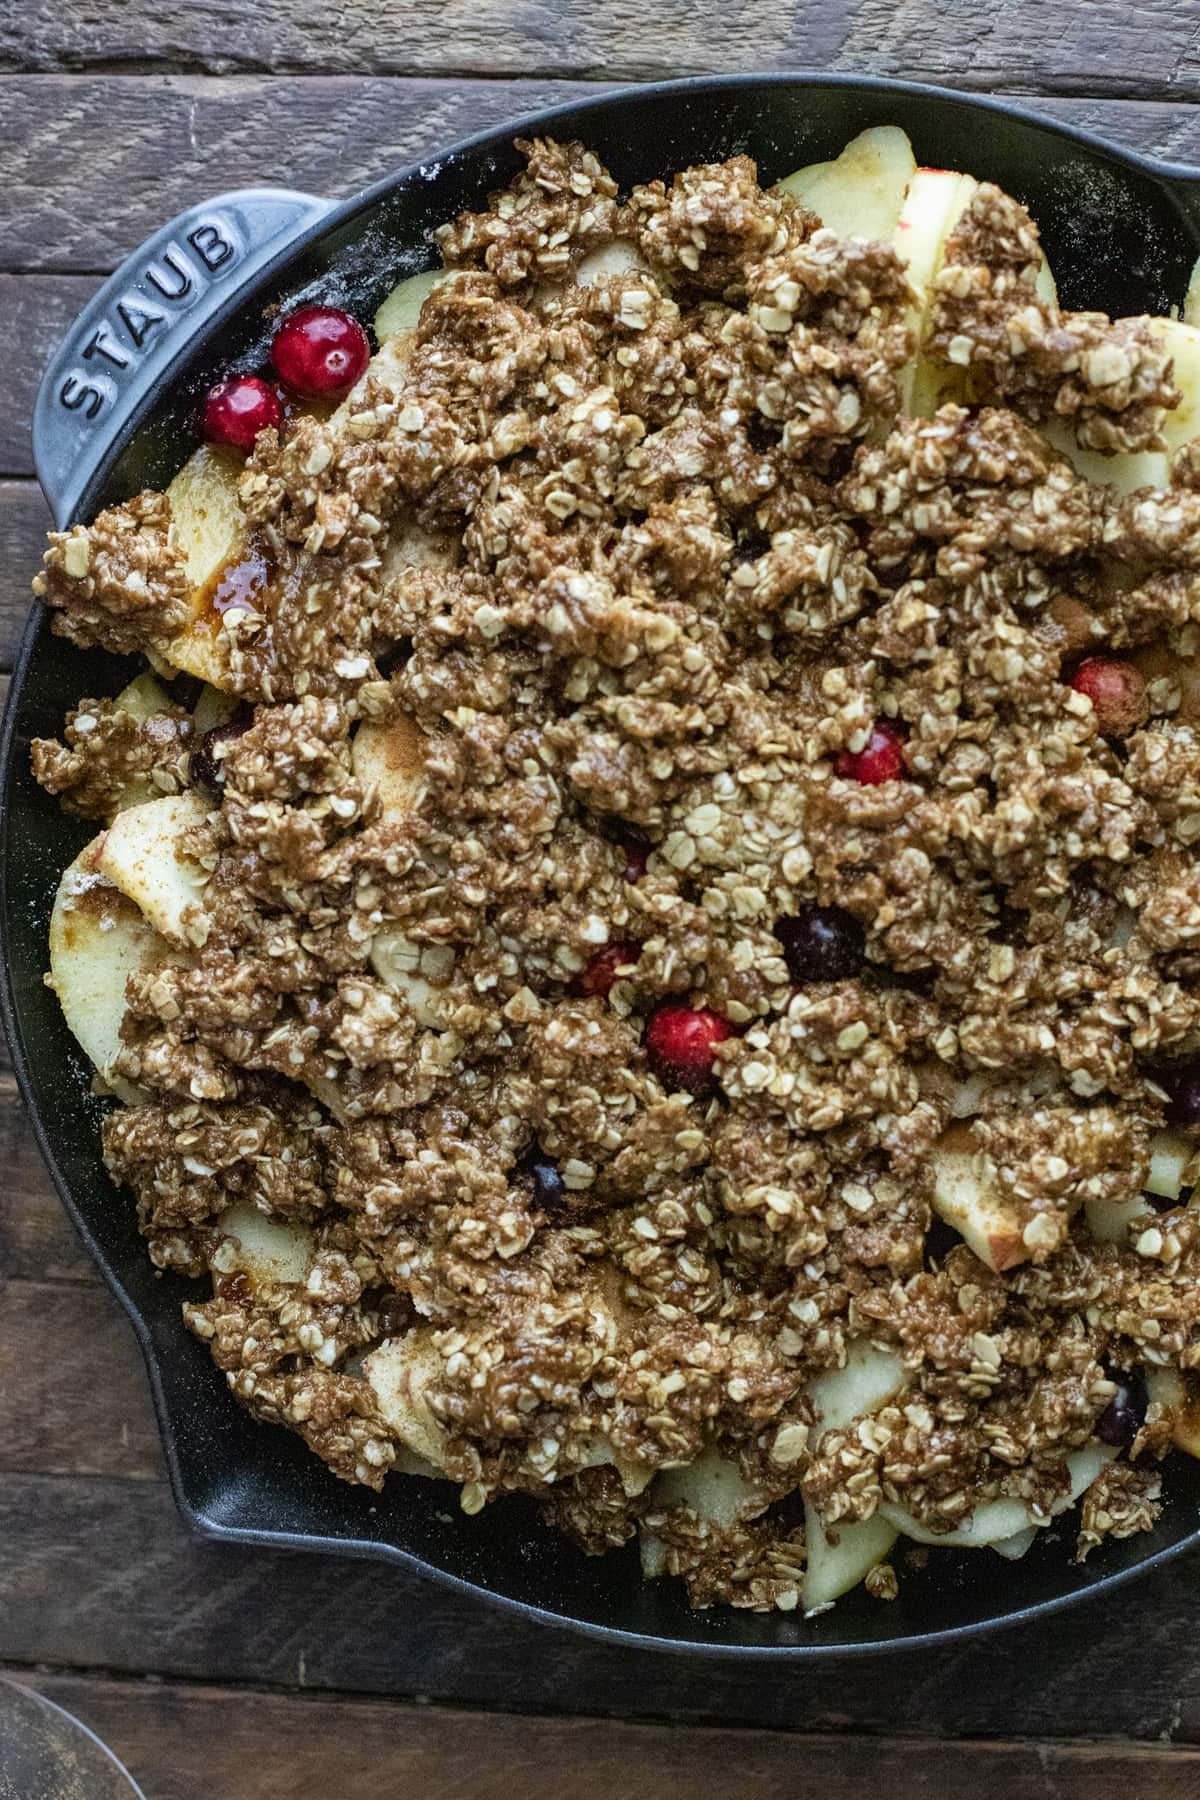 Cast iron skillet with cranberry and apples topped with an oat crumble.